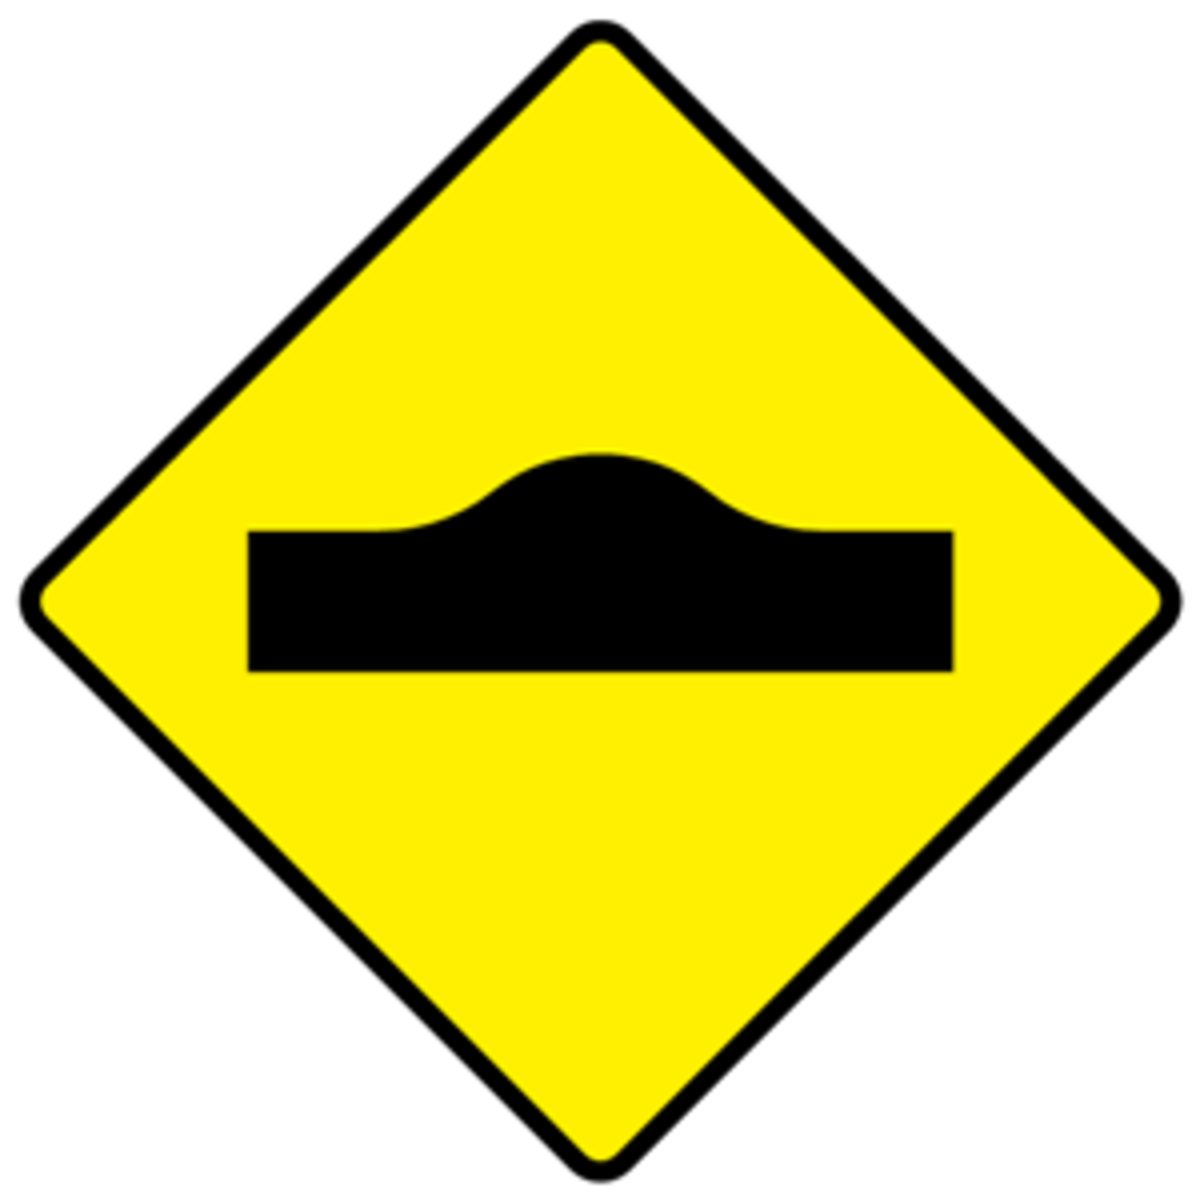 W130 Road Hump Warning Sign Ireland.If You See One Of These Signs . . .Slow Down!